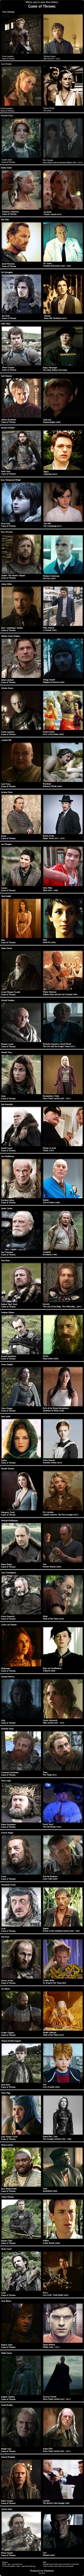 Geek Discover Game of Thrones Actors: Where Youve Seen Them Before Serie Got, Film Serie, Movies Showing, Movies And Tv Shows, Acteurs Game Of Throne, Best Tv, The Best, Game Of Trone, Game Of Throne Actors